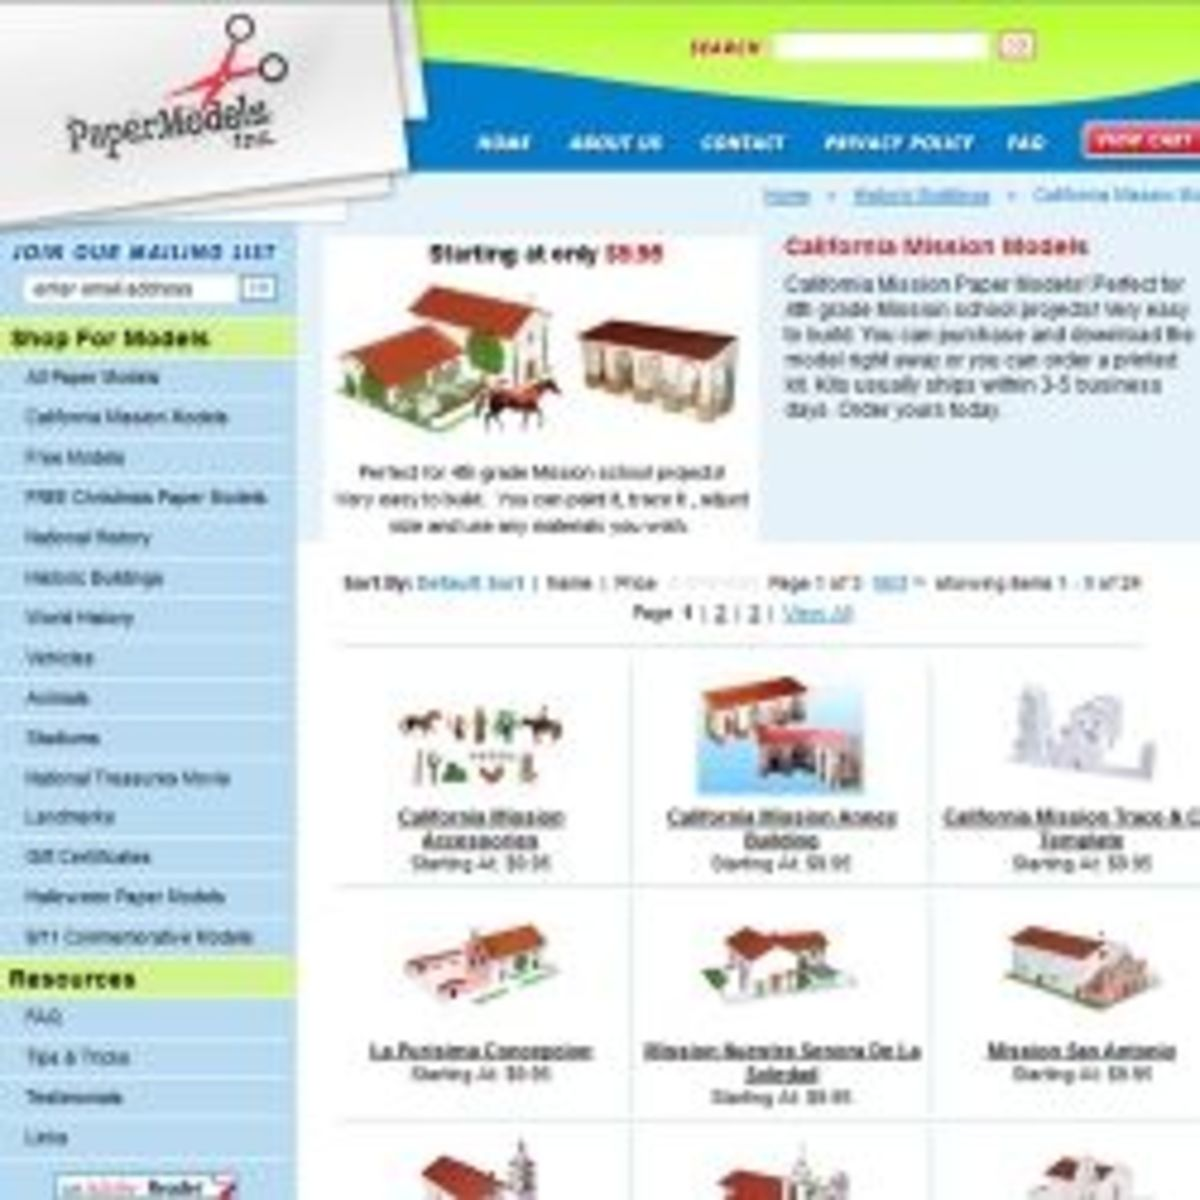 Go To PaperModels.com